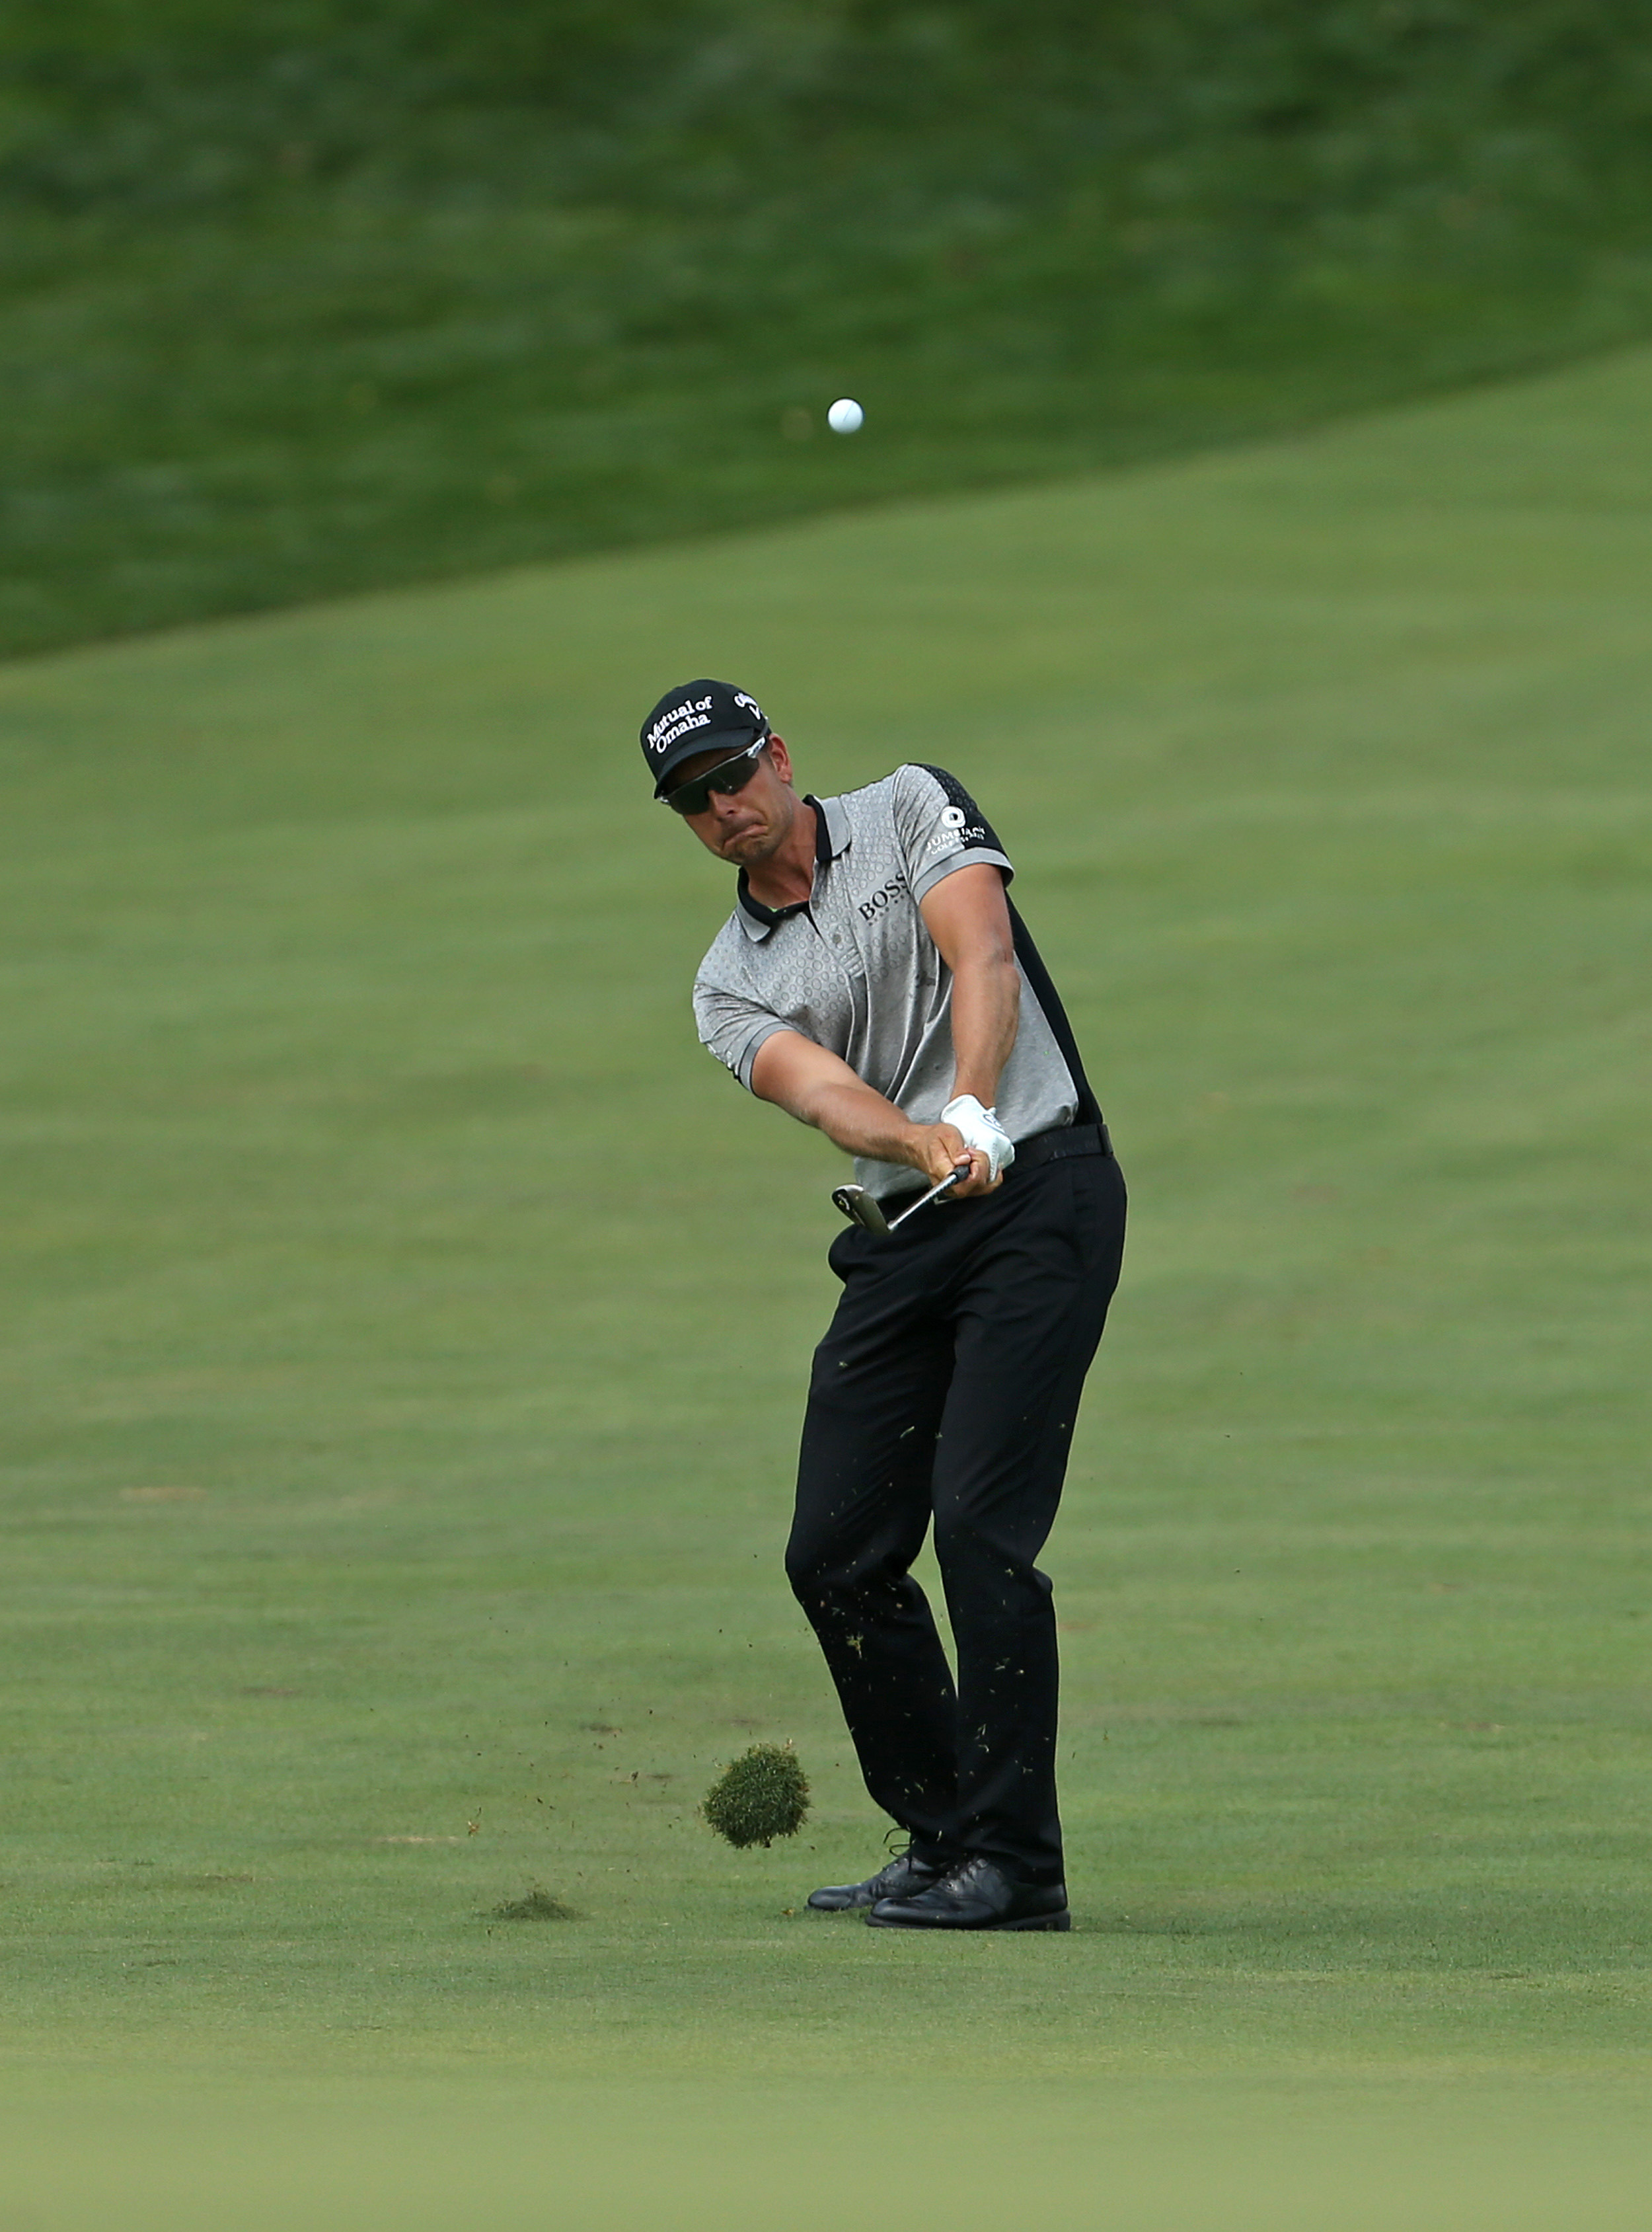 Henrik Stenson, of Sweden, hits from the second fairway during the final round of play at The Barclays golf tournament Sunday, Aug. 30, 2015, in Edison, N.J. (AP Photo/Adam Hunger)